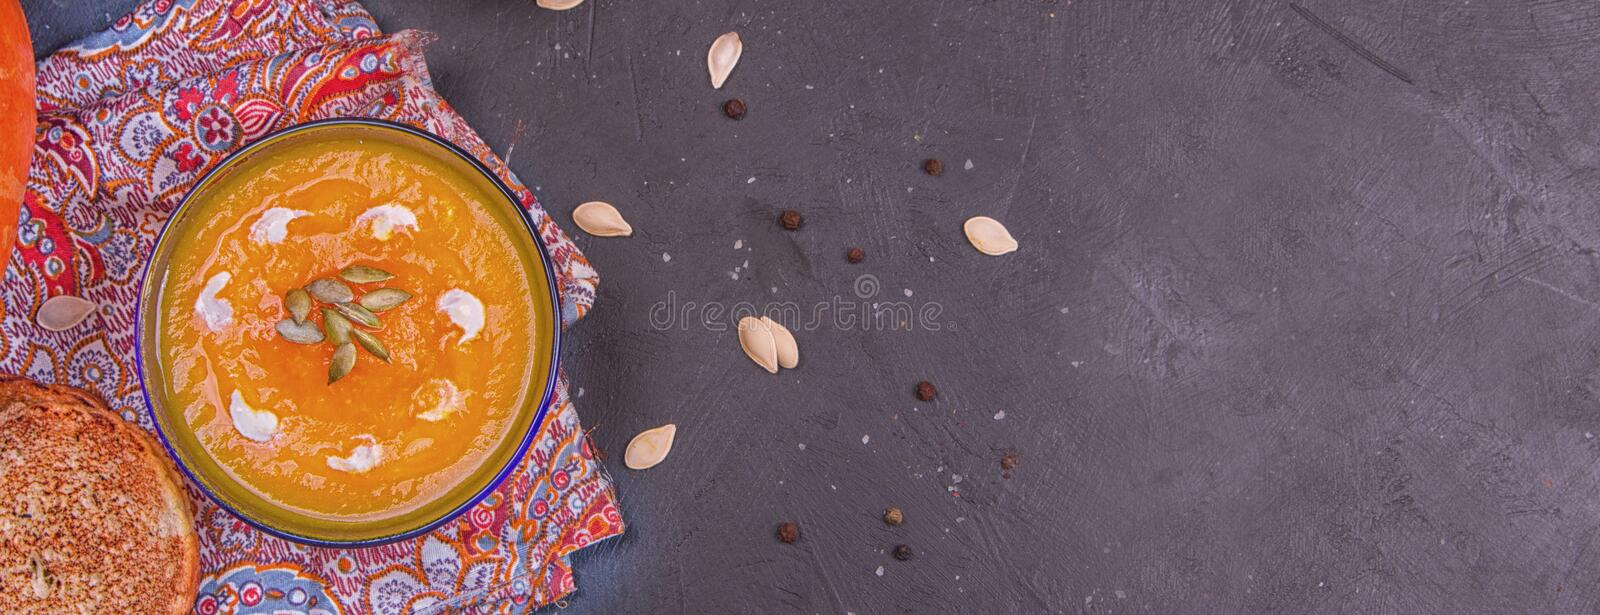 Cream of roasted pumpkin spicy soup traditional simple vegetarian autumn vegetable healthy organic diet homemade food meal on royalty free stock photos